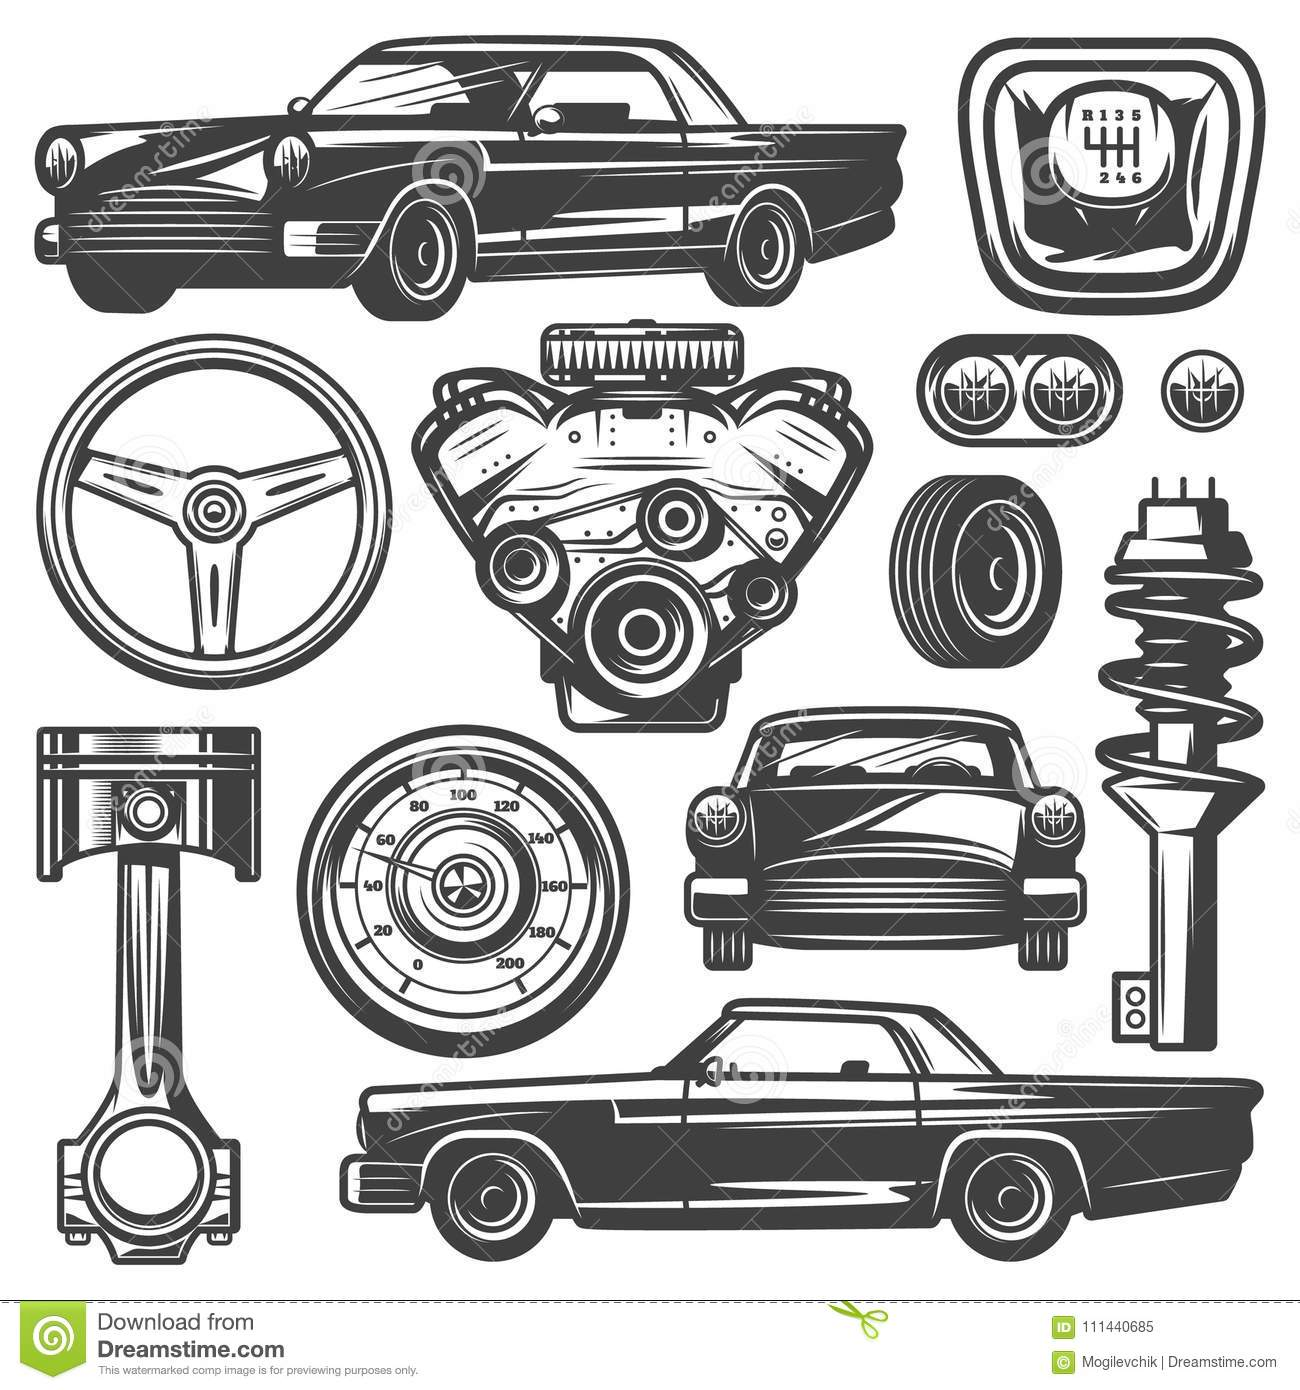 Vintage Car Components Collection Stock Vector - Illustration of ...